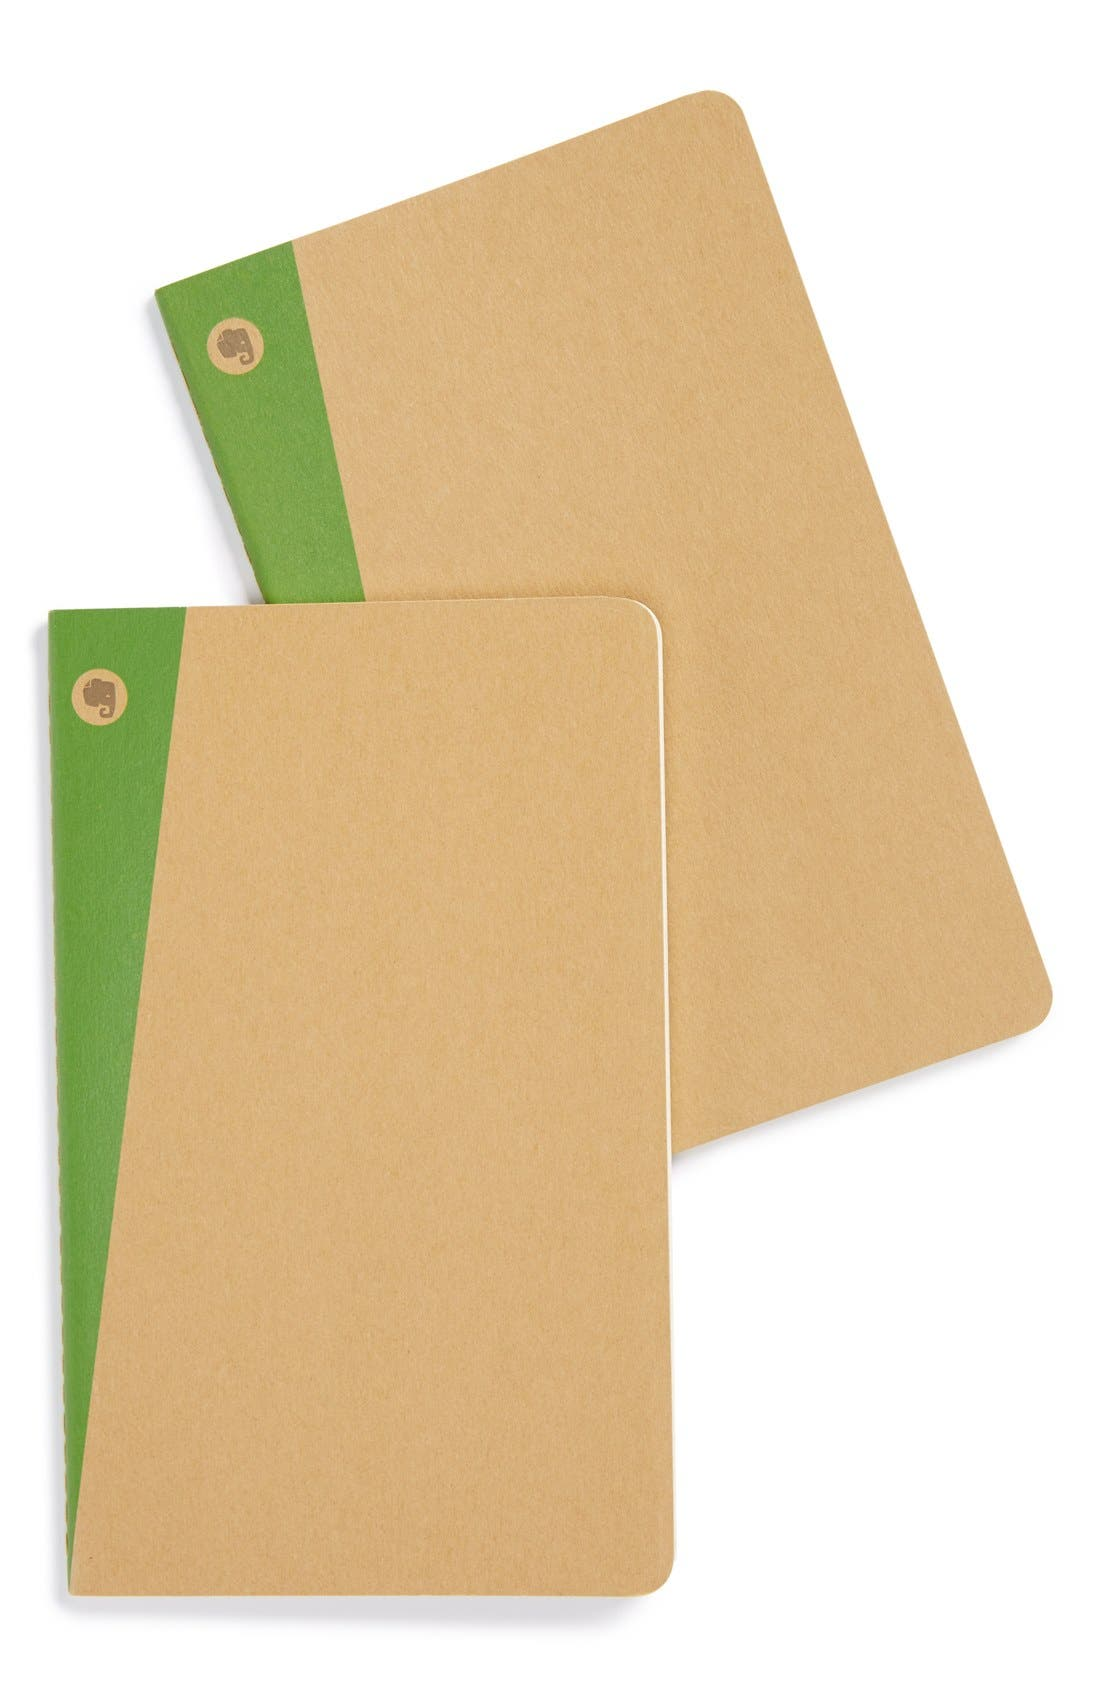 Alternate Image 1 Selected - Moleskine 'Ruled - Large' Evernote Edition Soft Cover Notebook (2-Pack)